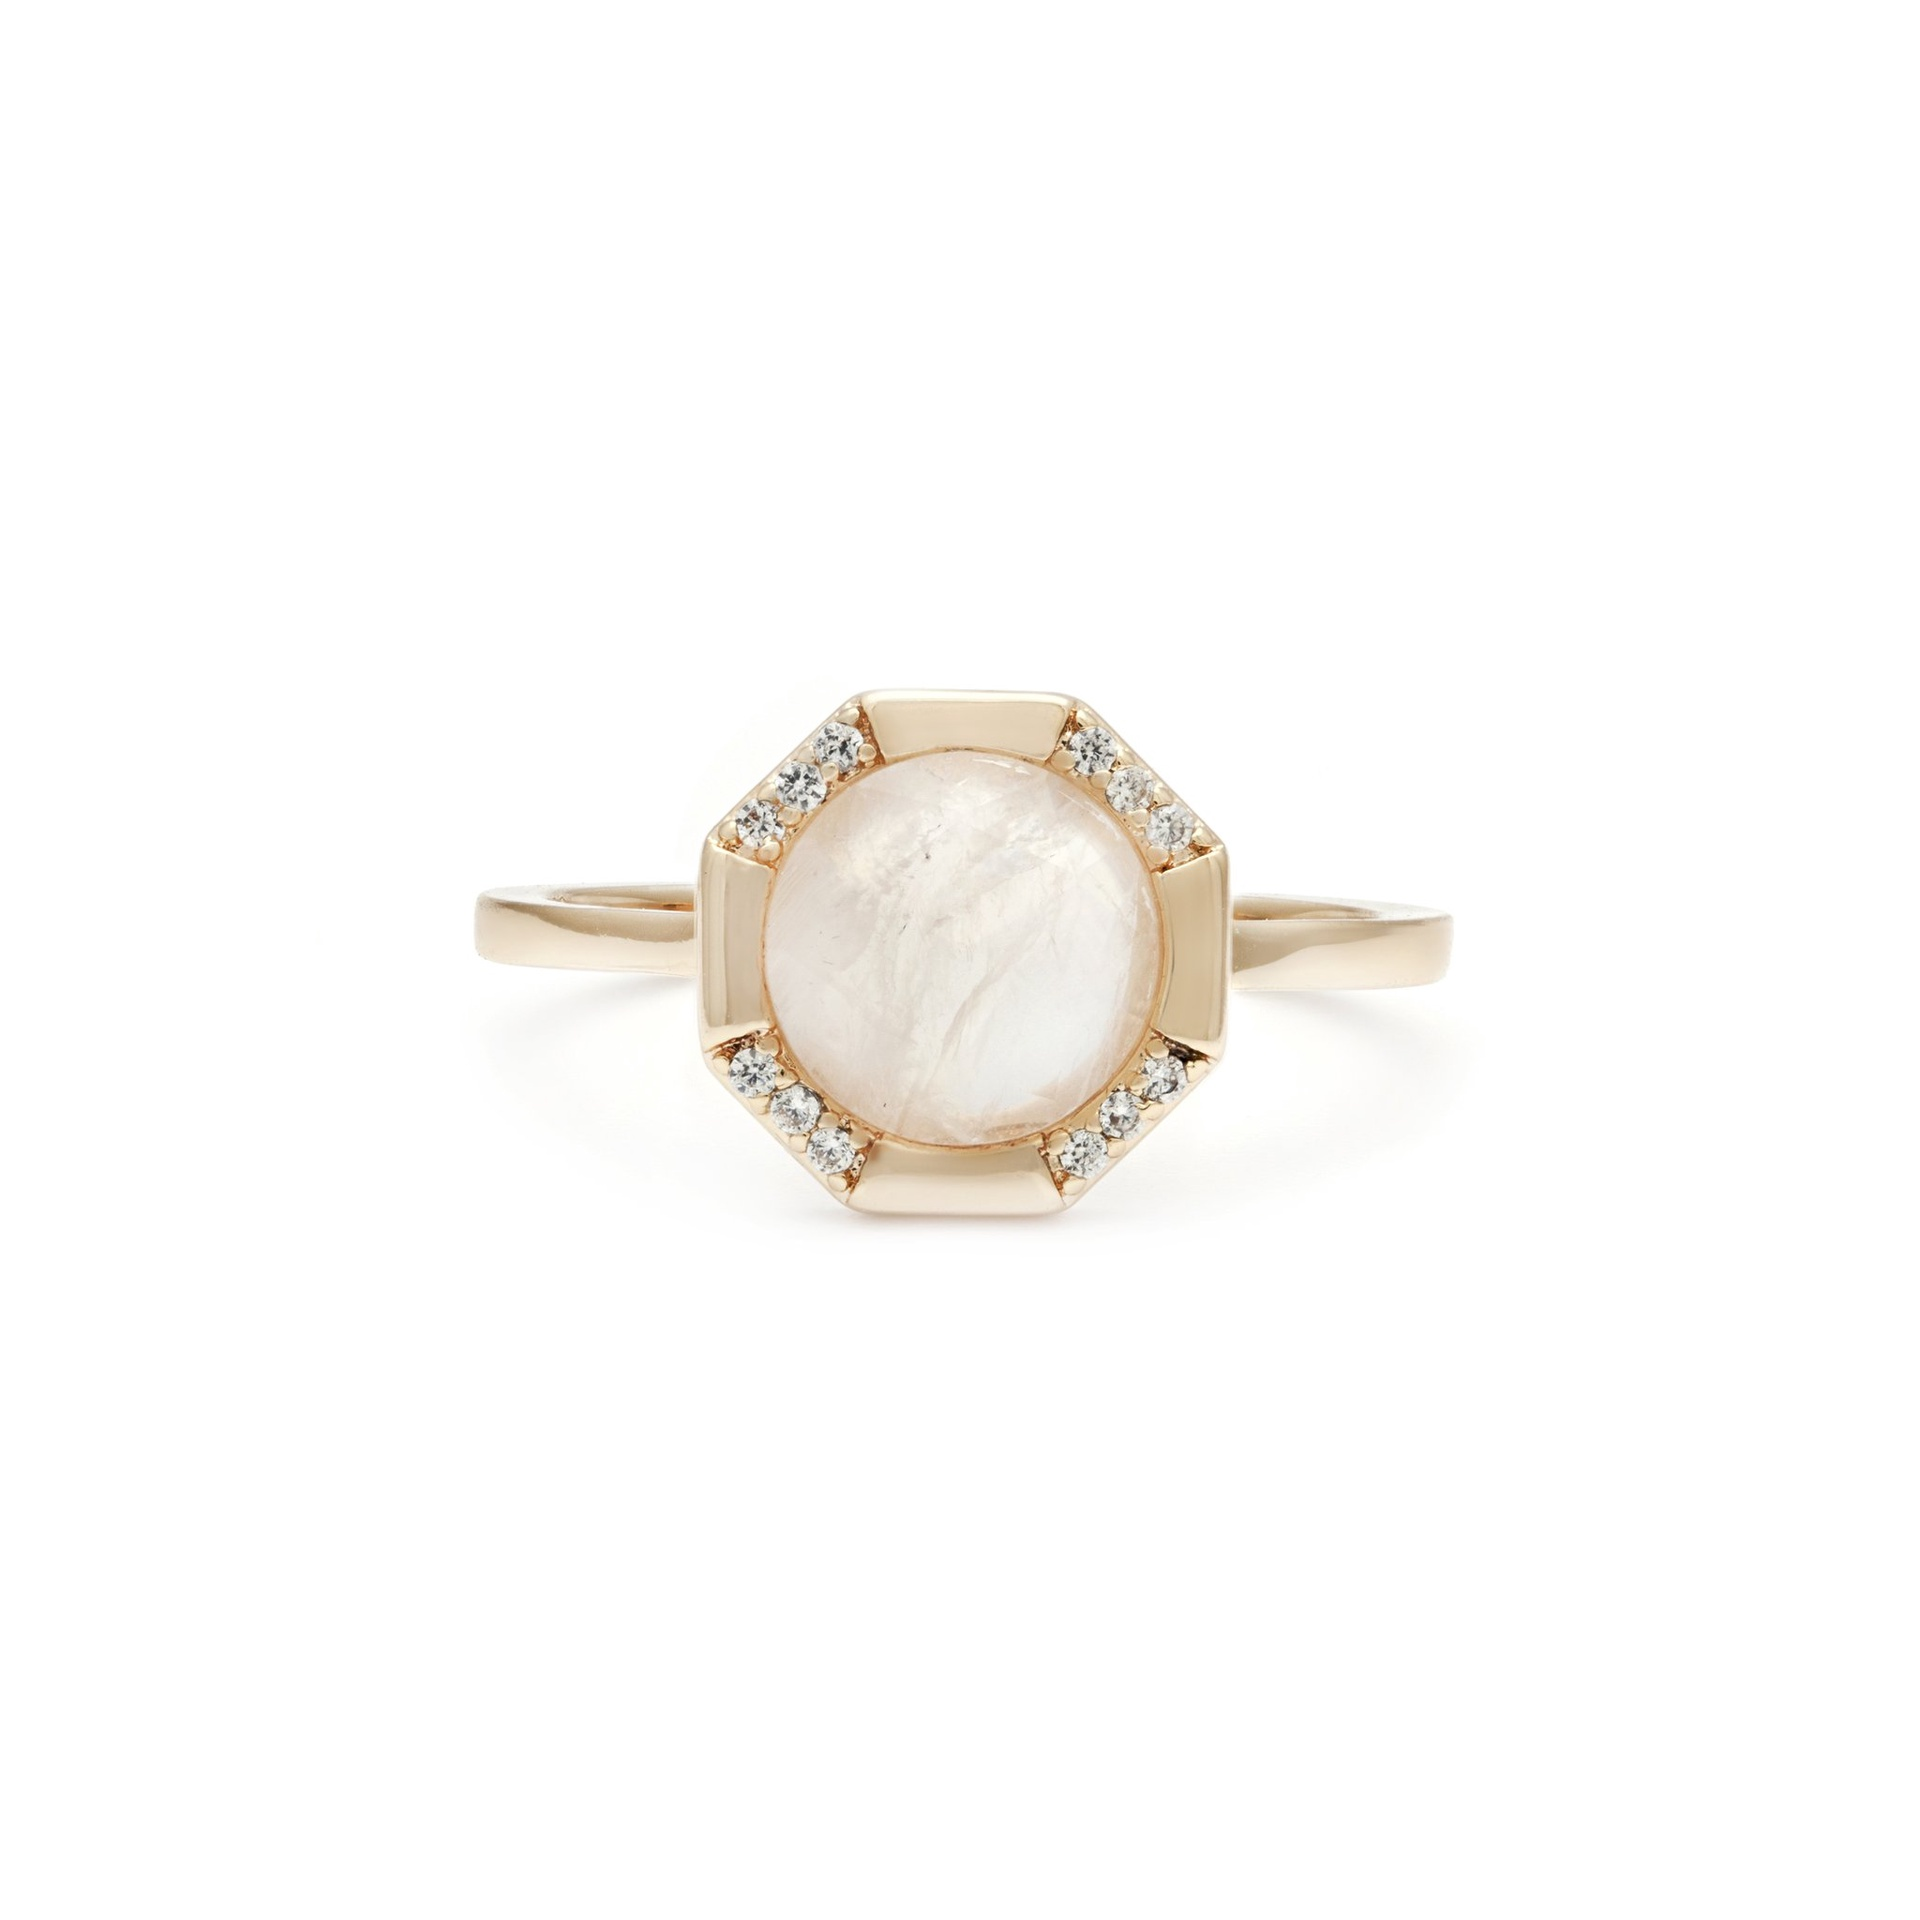 MELANIE AULD - ATHENA RING IN GOLD/MOONSTONE